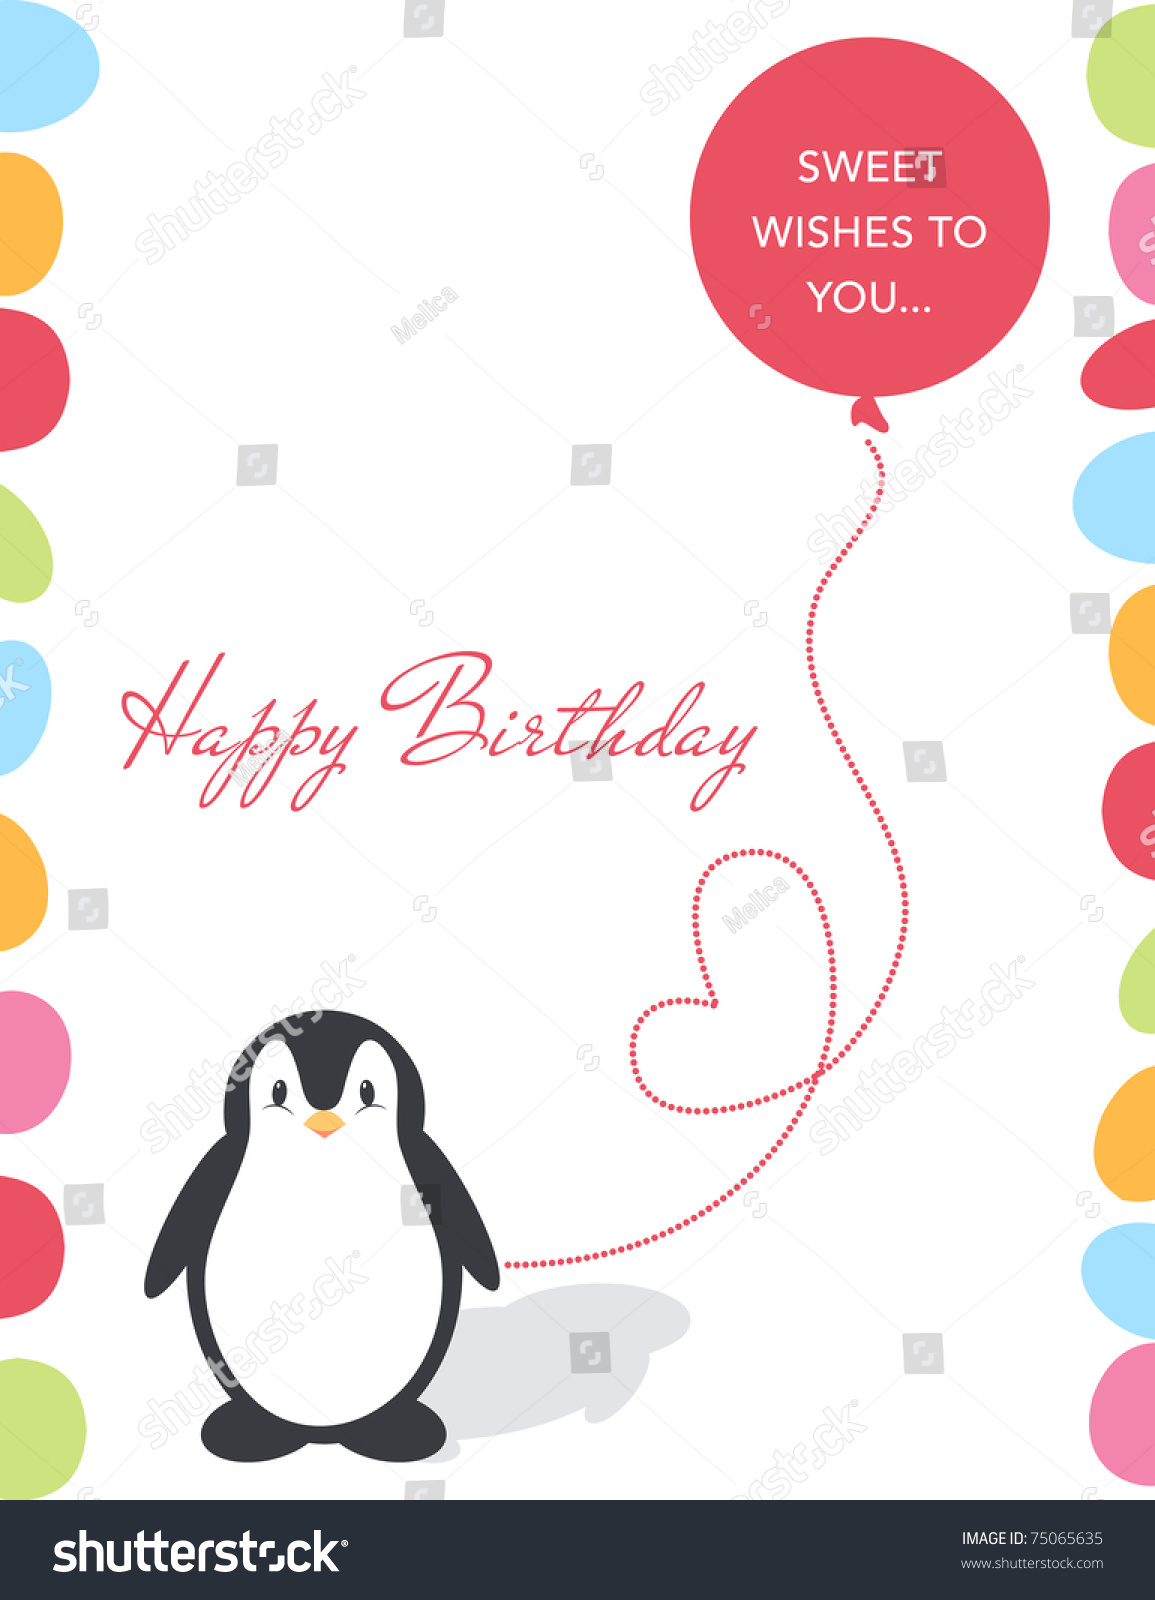 illustration of a birthday card with a cute penguin and balloon, Birthday card